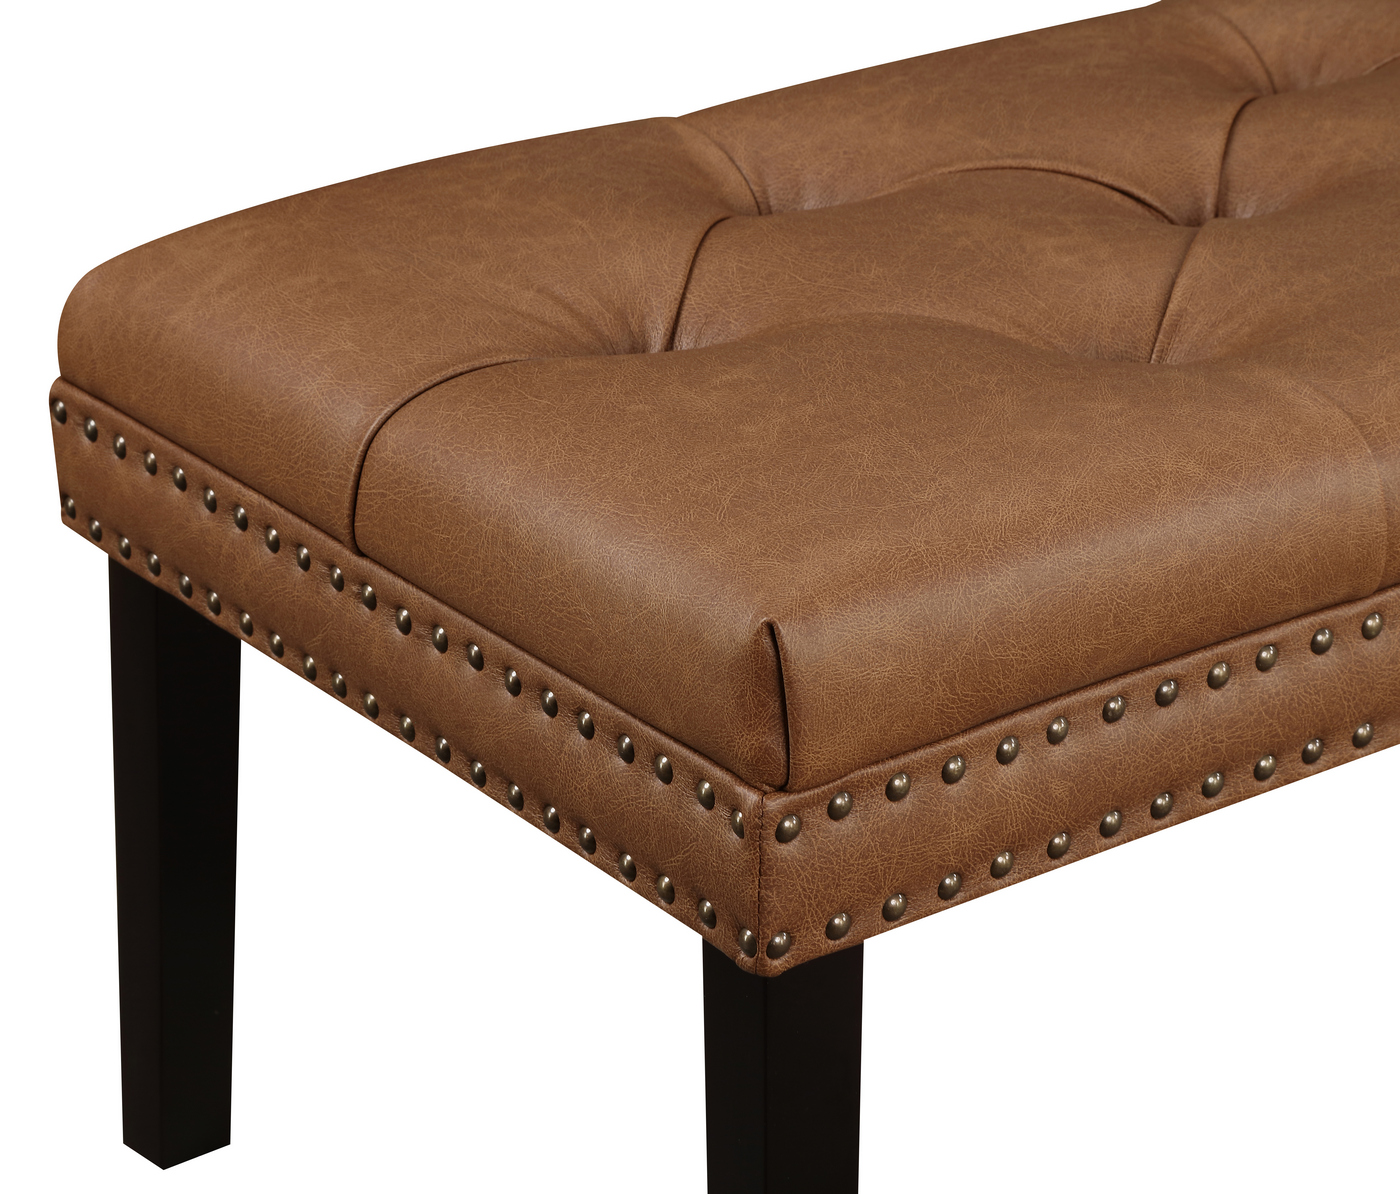 Covington Faux Leather Diamond Tufted Bench with Nailhead ... on Cognac Leather Headboard  id=94078